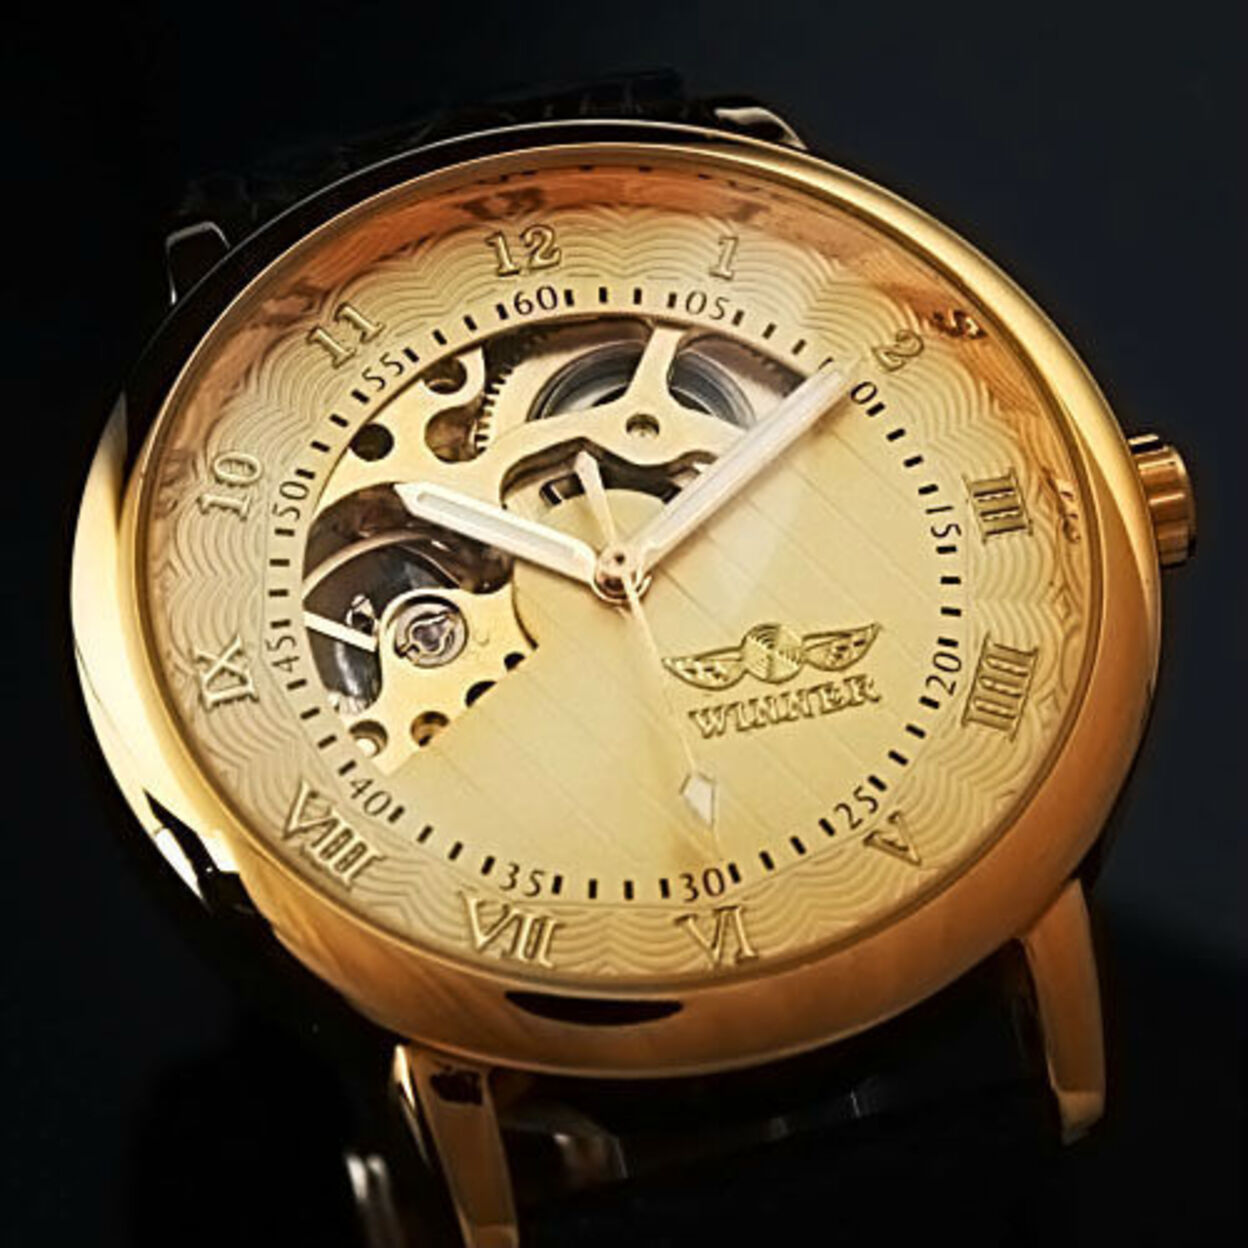 Sophisticated In Gold Mechanical Skeleton Automatic Watch For Men 54a594dc503d6f421c0000f6